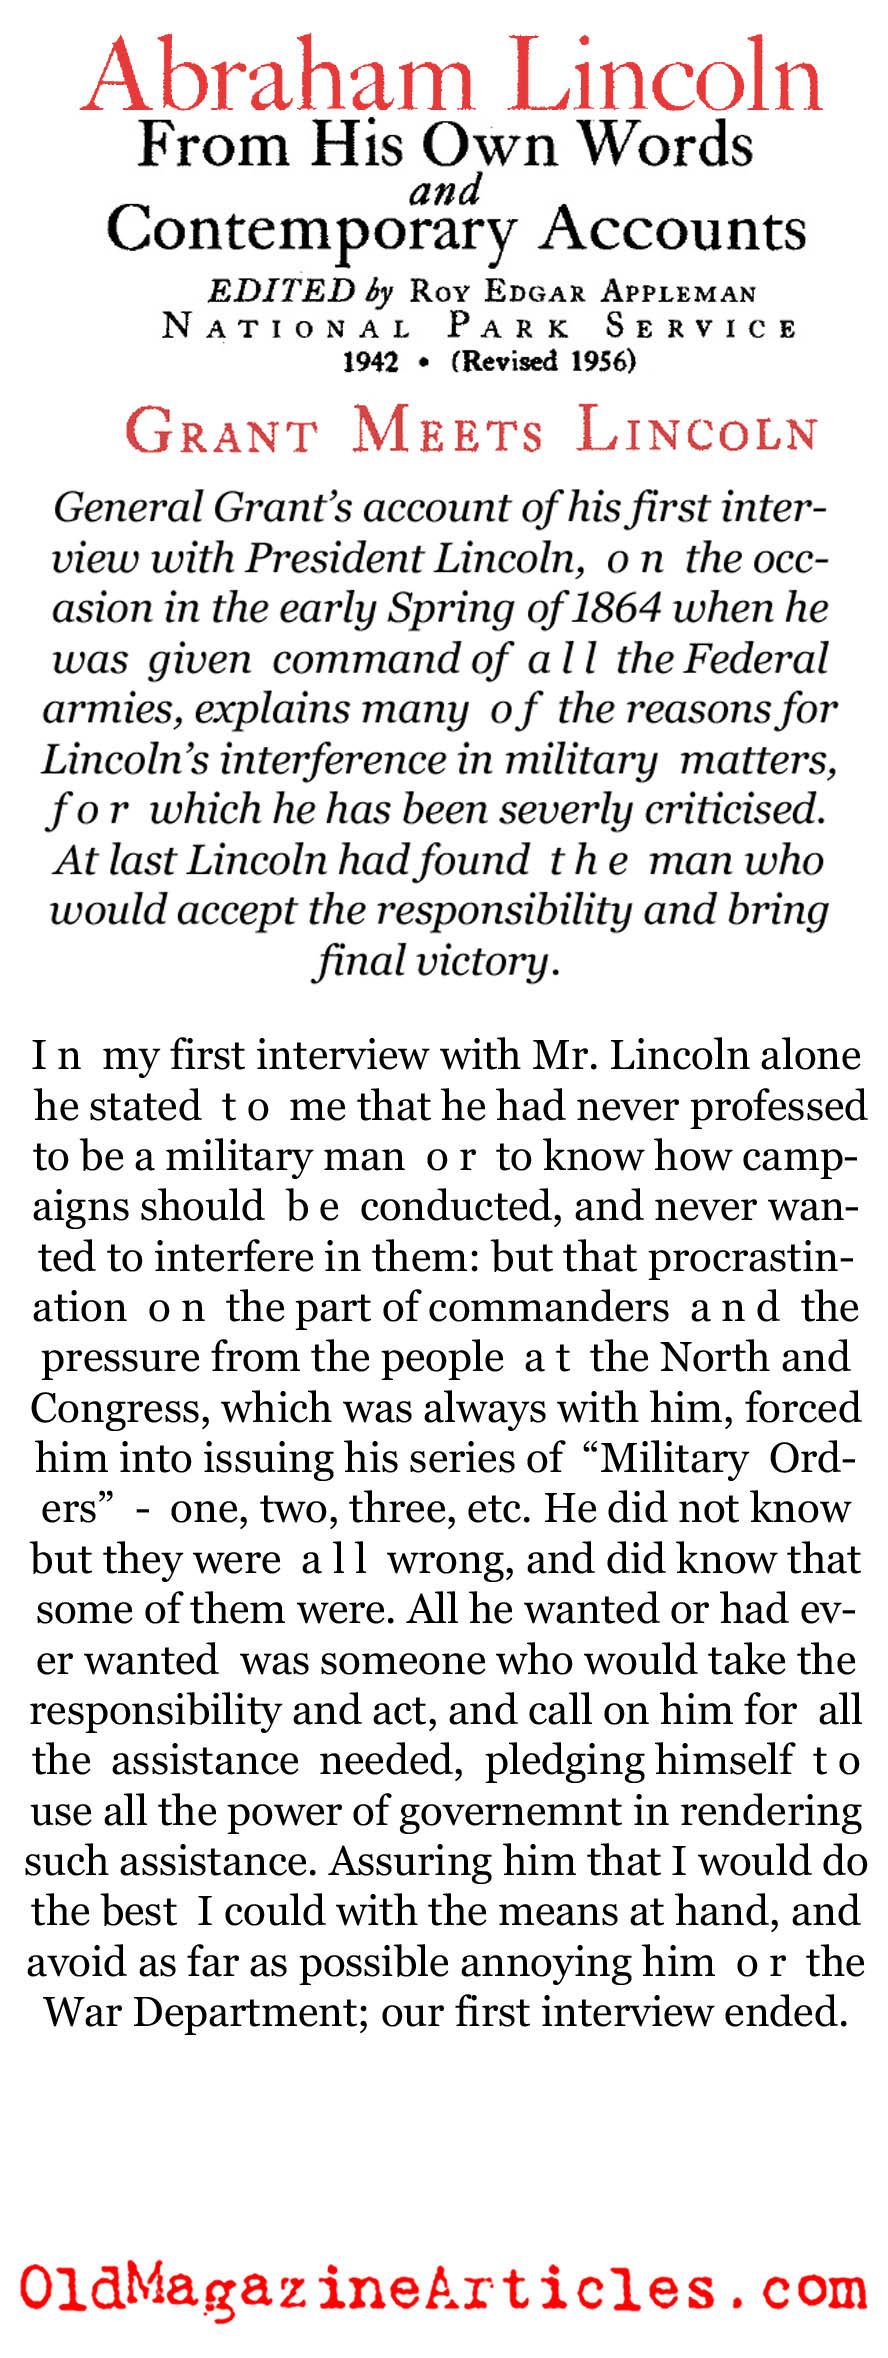 General Grant Recalled Meeting Lincoln (National Park Service, 1956)